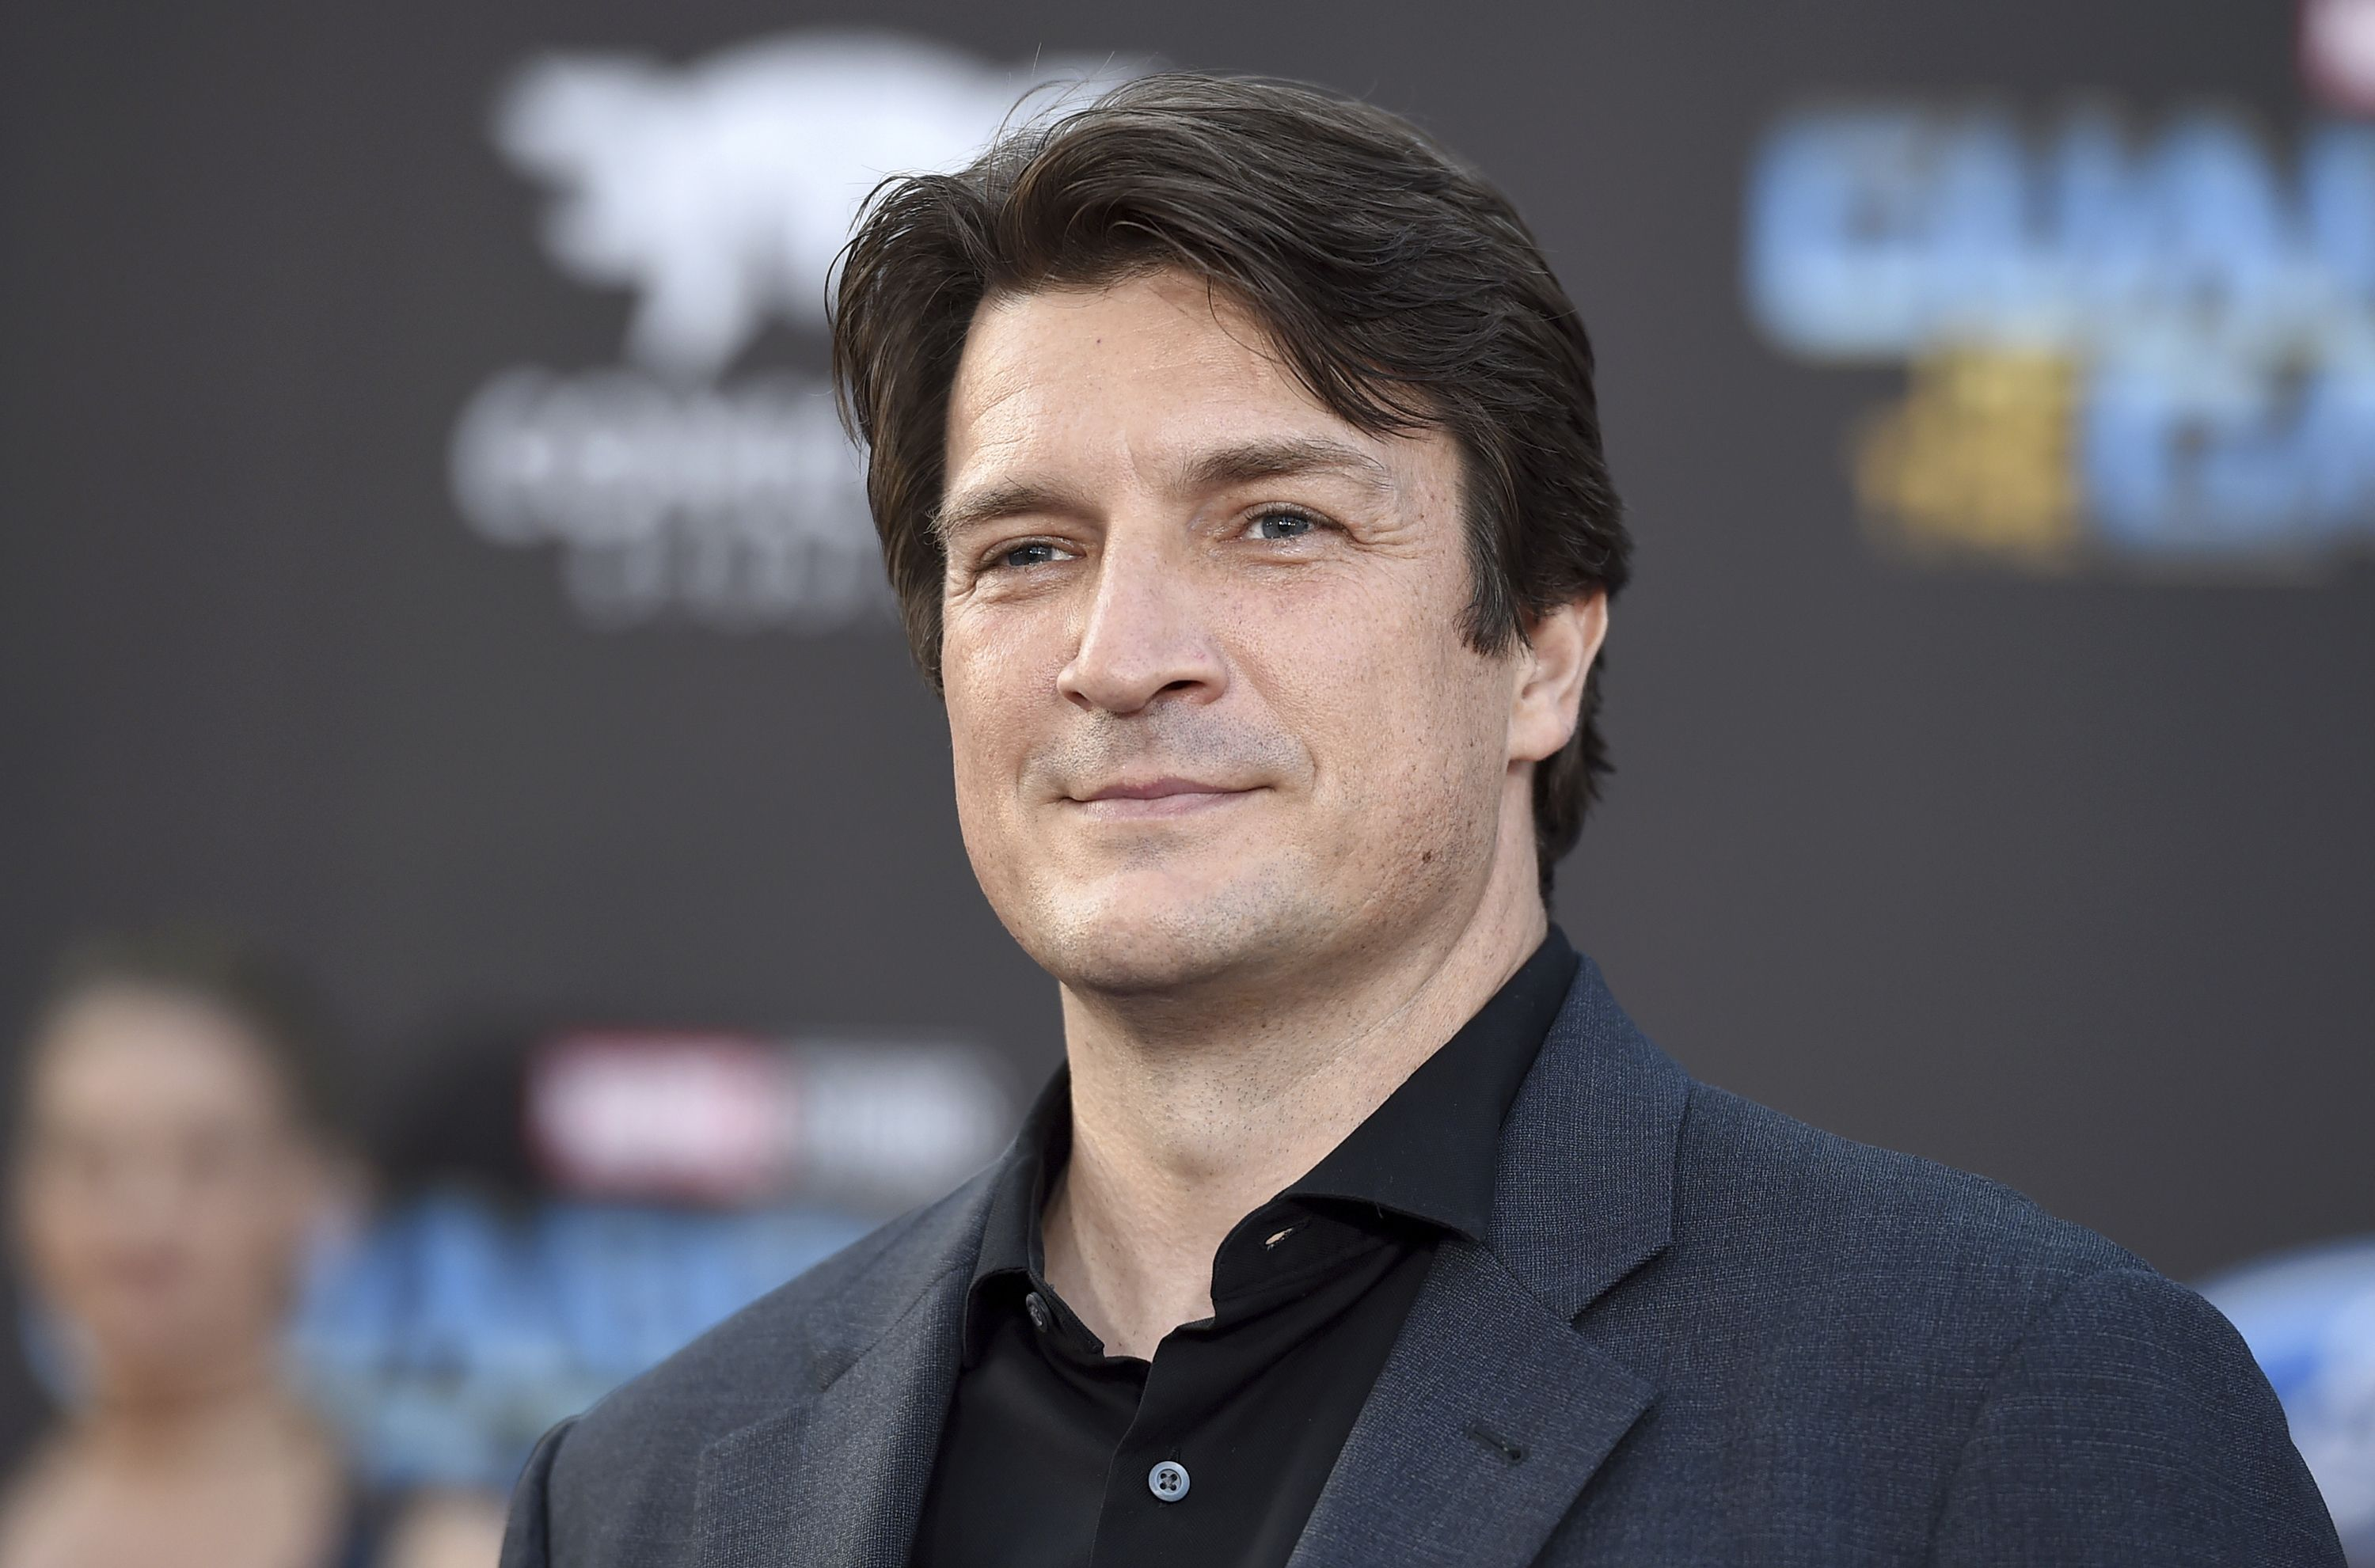 Nathan Fillion Takes Leaf Out Of Whedon Playbook For Drama The Rookie –  Deadline